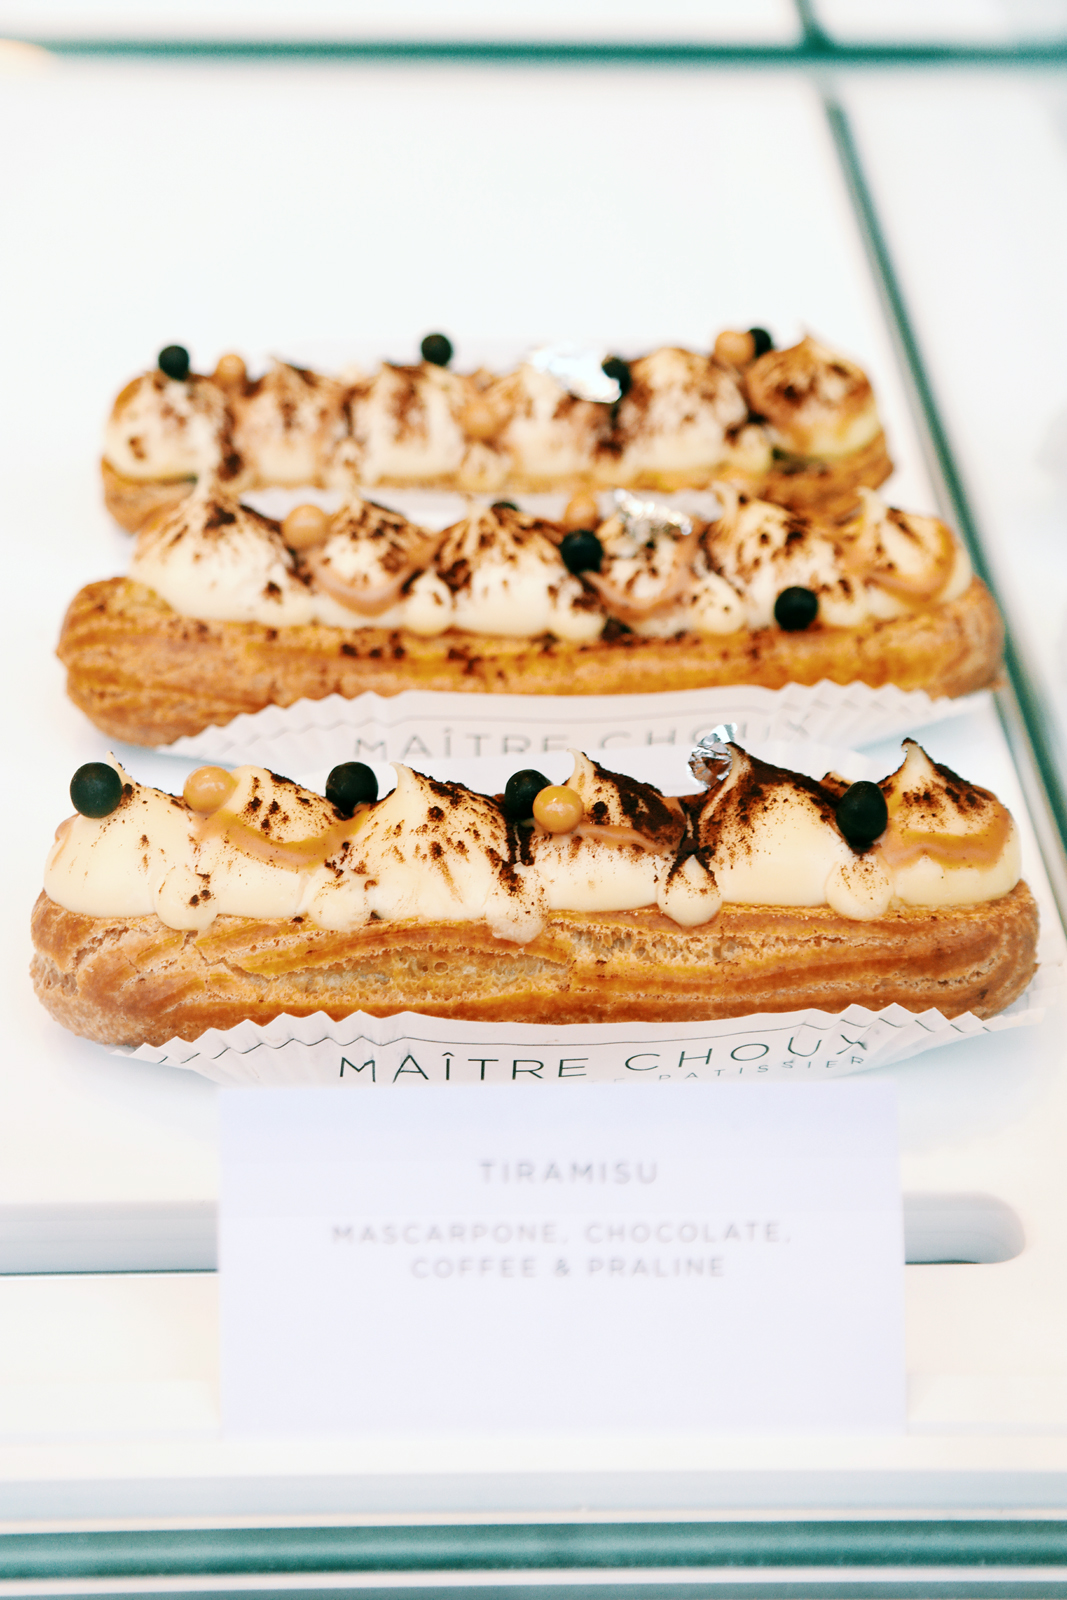 Eclair-Tiramisu-mascarpone-chocolate-coffee-praline-chocolat-café-Maitre-Choux-pastry-patisserie-London-Londres-Joakim-Prat-eclairs-South-Kensington-photo-by-United-States-of-Paris-blog